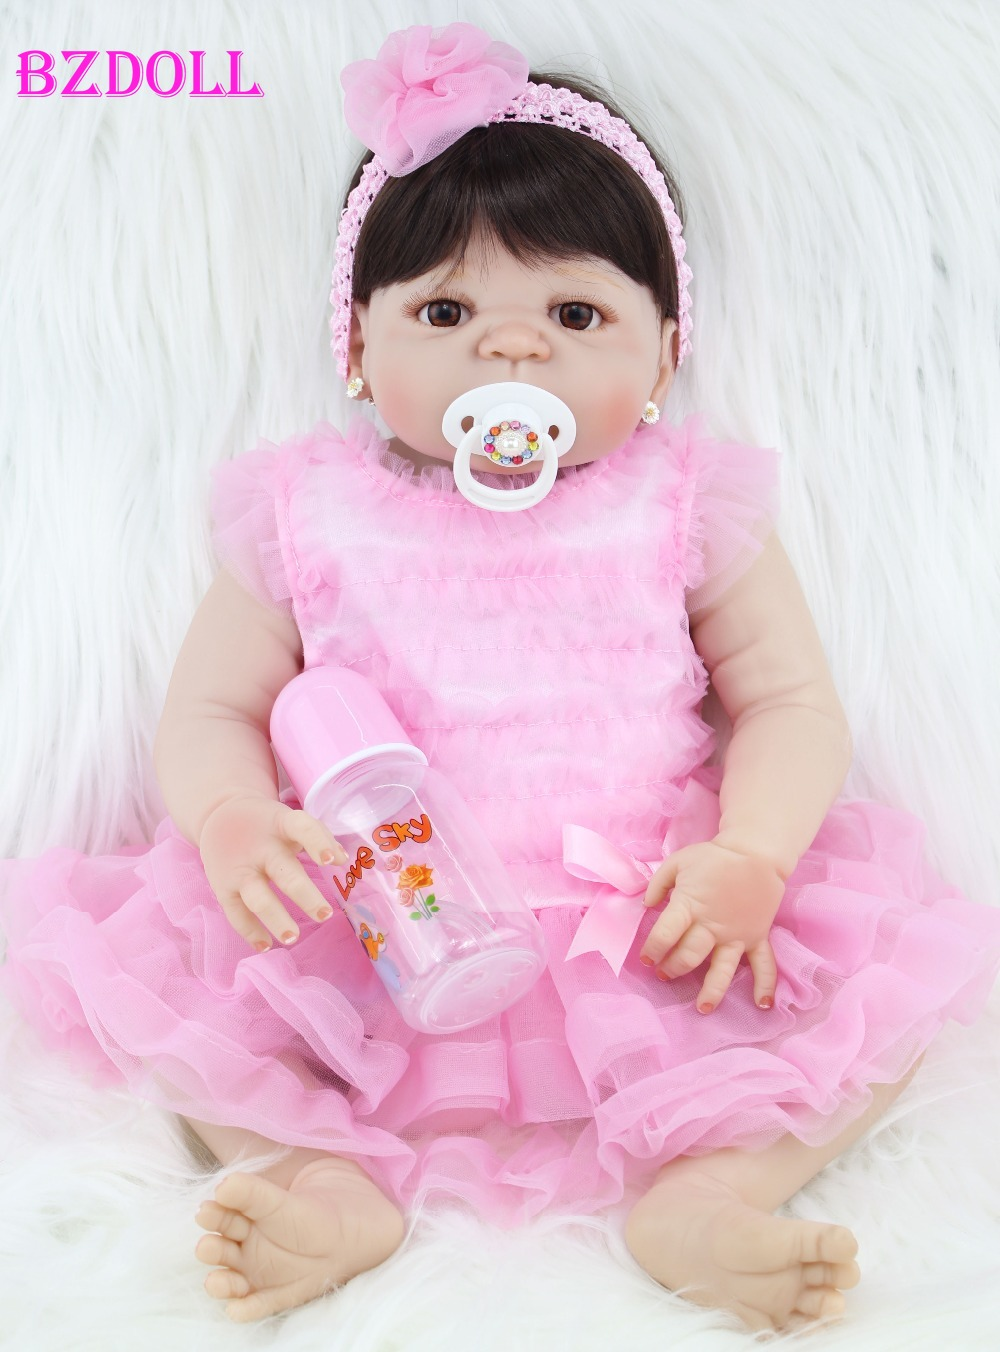 BZDOLL 55cm Full Silicone Reborn Girl Baby Doll Toys Lifelike Newborn Princess Girls Babies Doll Birthday